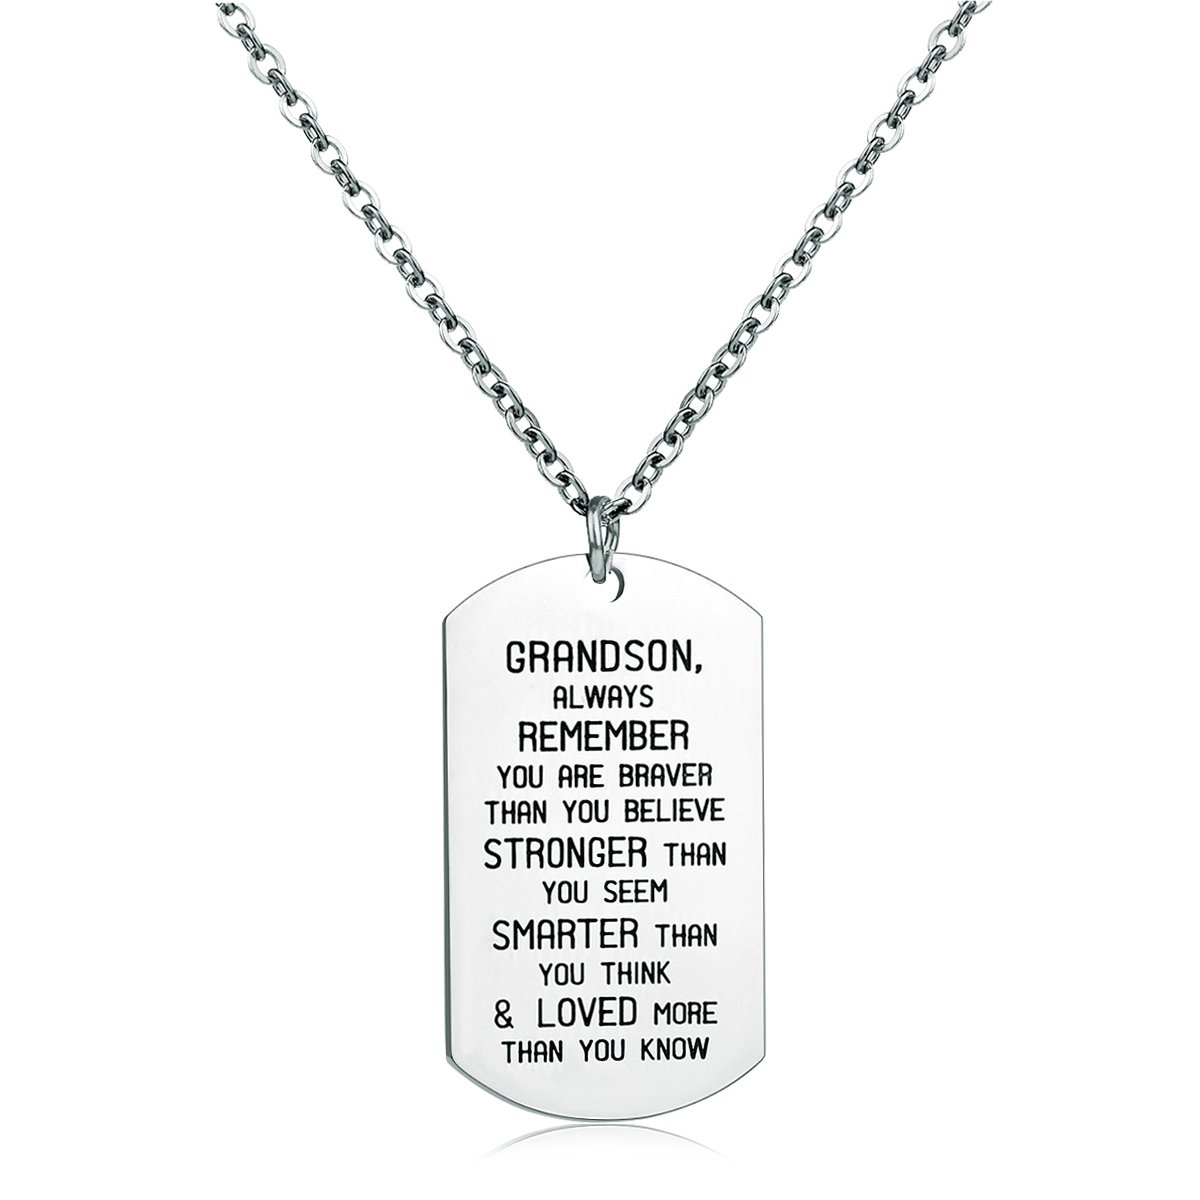 To My GrandSon Dog Tag Military Stainless Steel Pendant Necklace Grandson Always Remember You are Braver Stronger Smarter than you think danjie